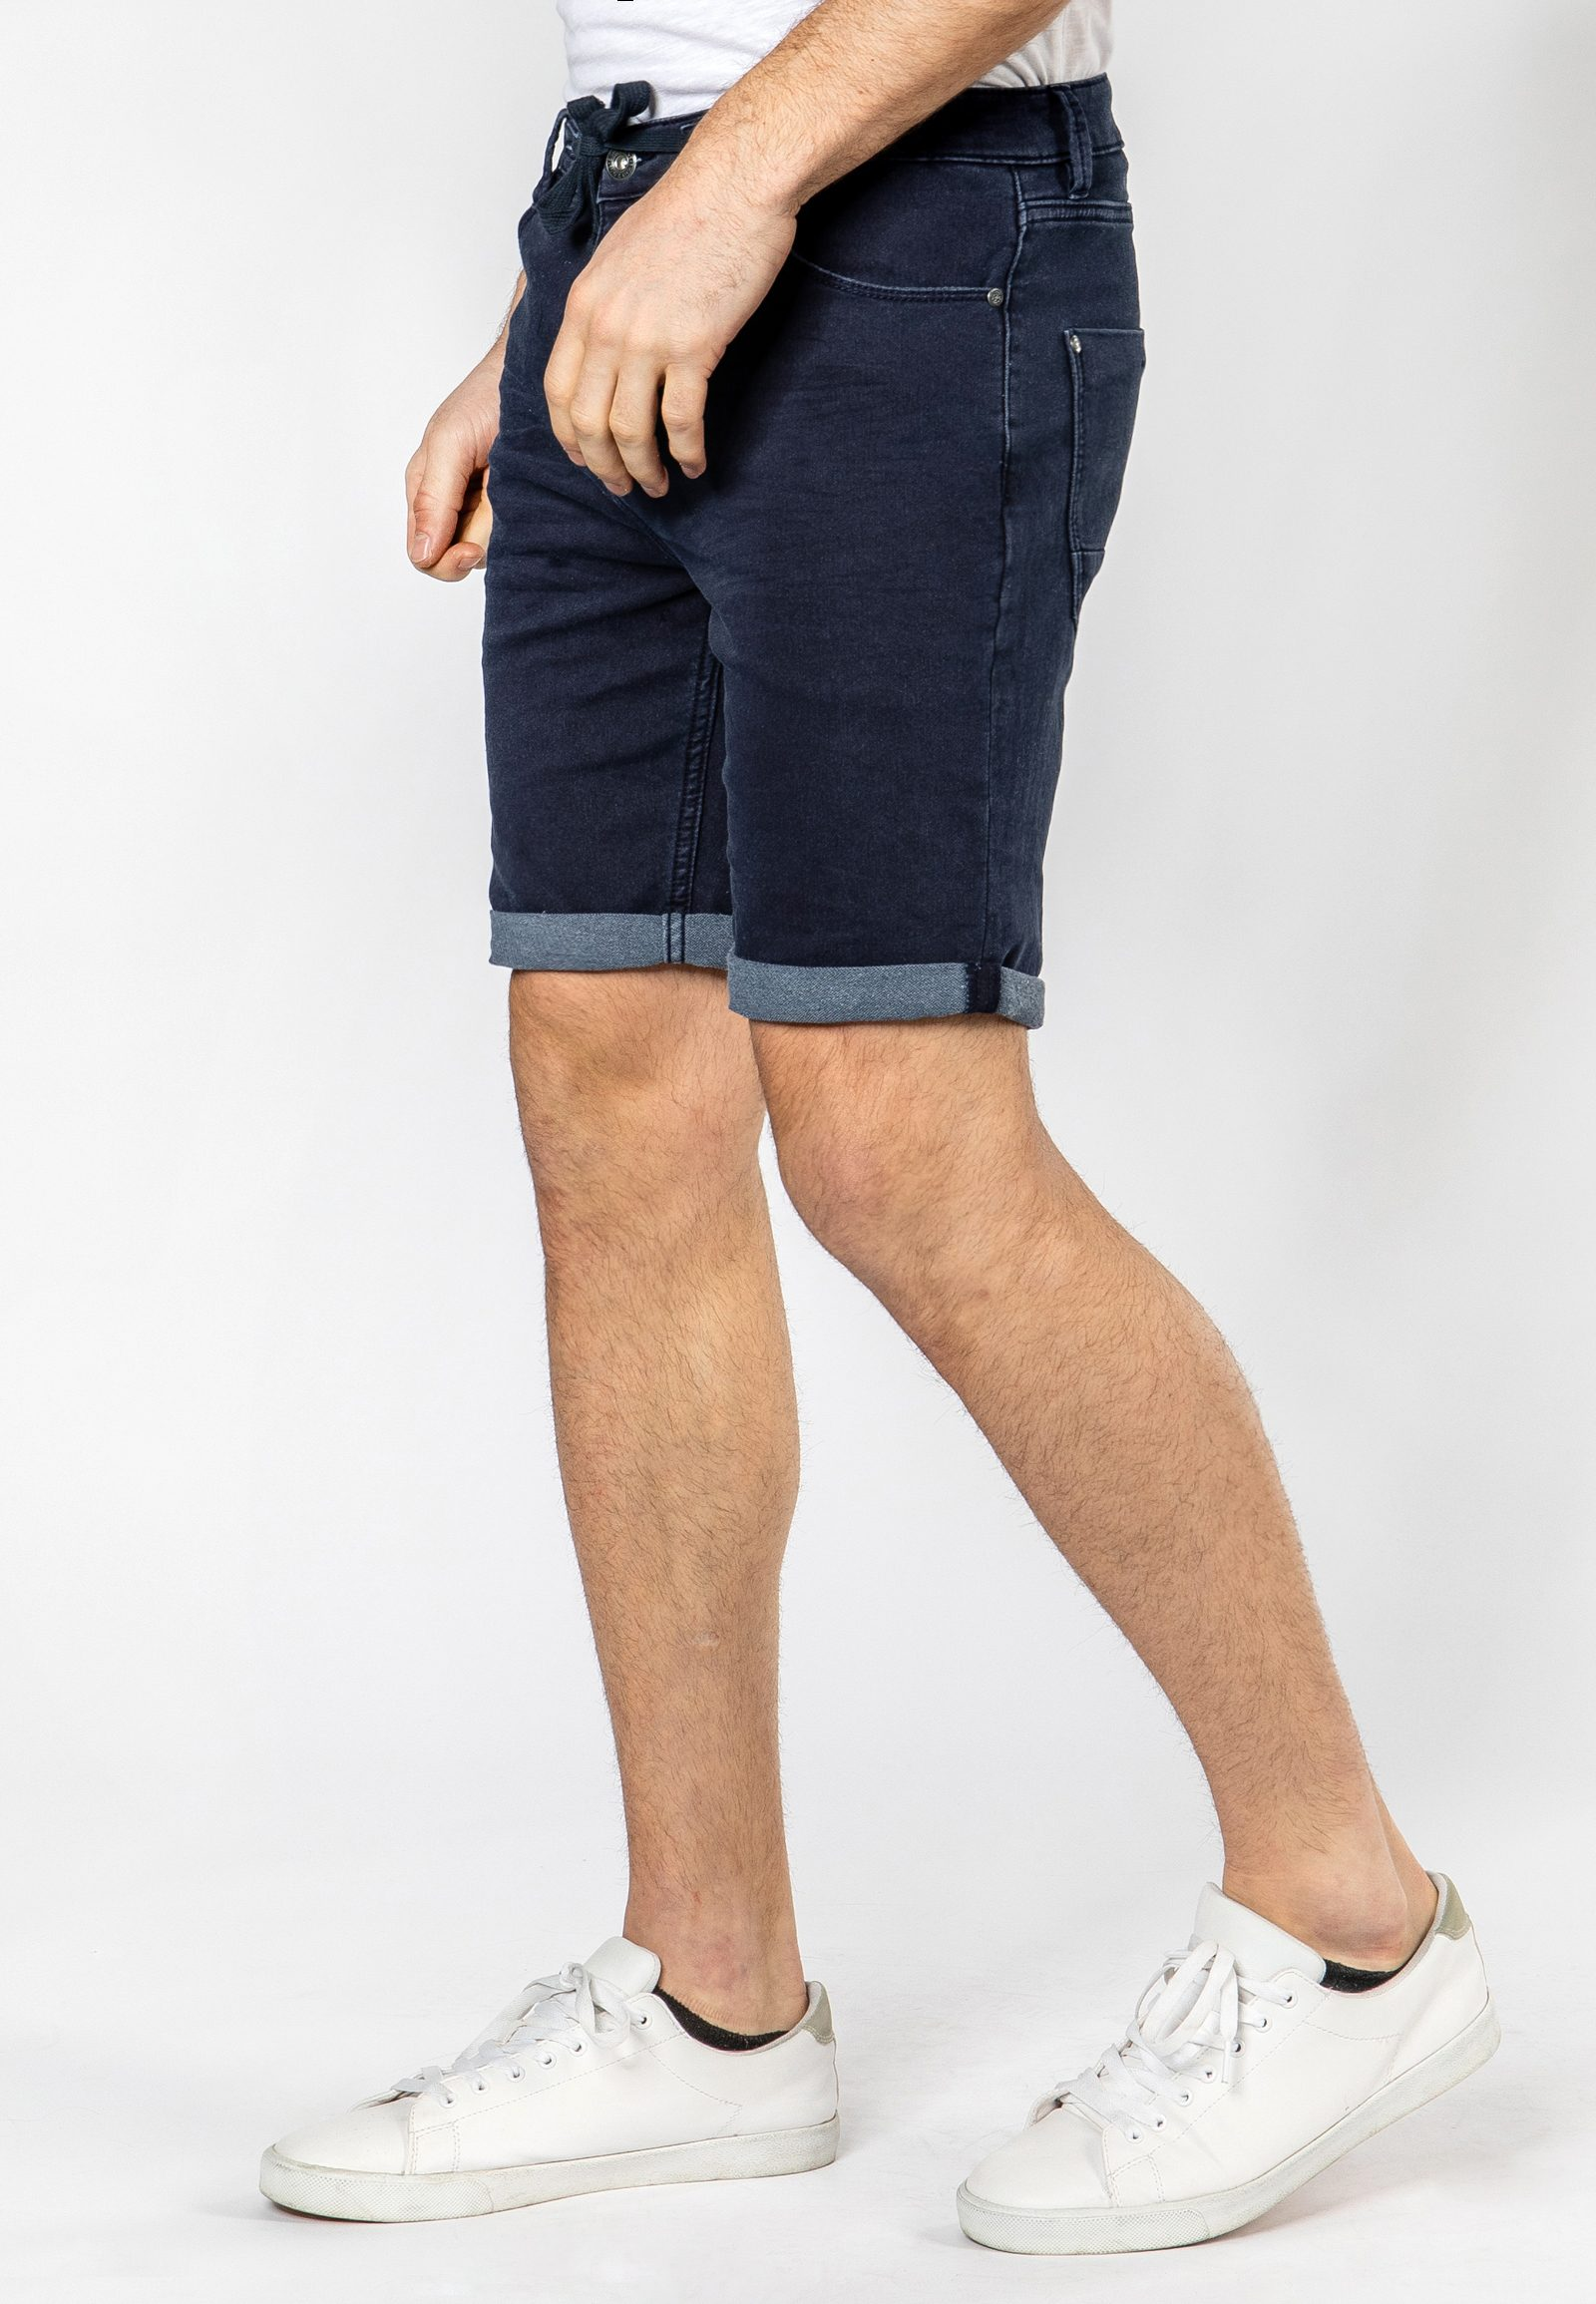 Vorschau: Sweat Bermuda in Denim-Optik